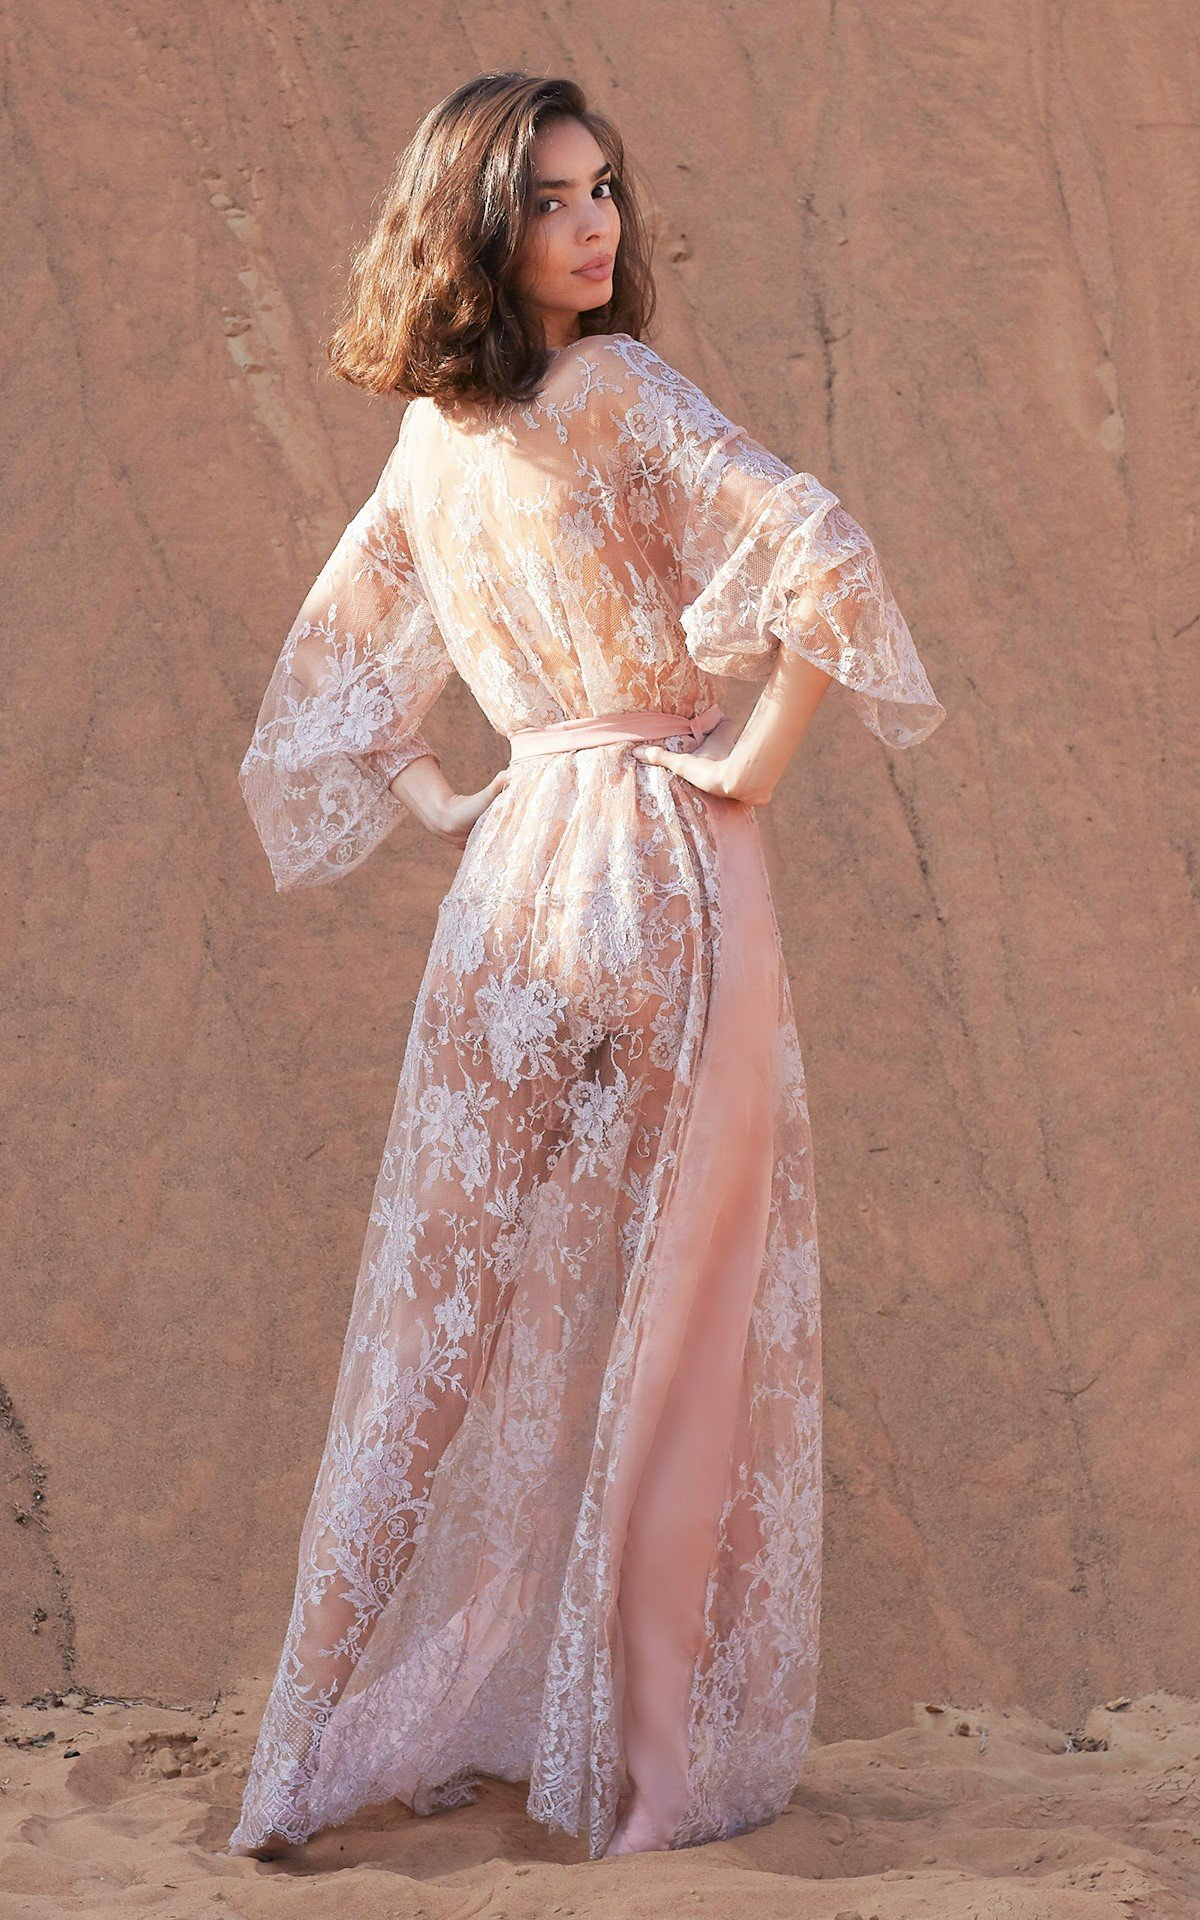 ROSAMOSARIO_A-princess-called-Meera_Rafiah-the-exquisite_Lace-robe_Silver-_-nude_4